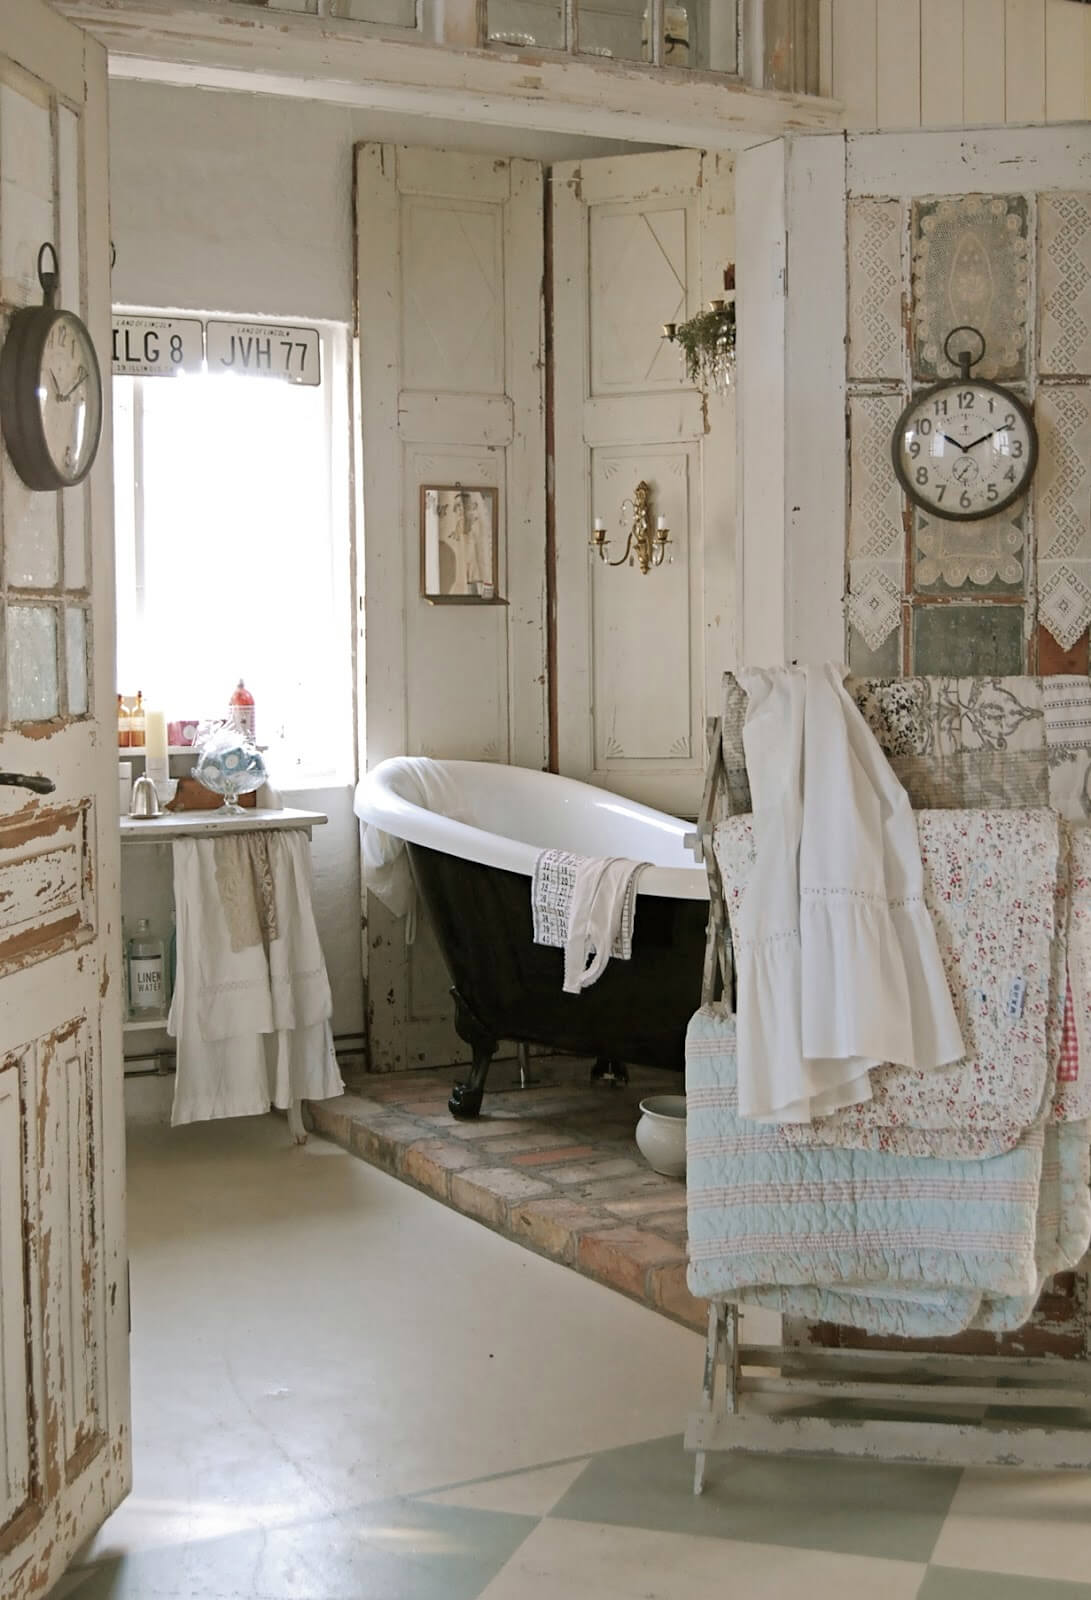 Vintage Bathroom with Quilt Rack